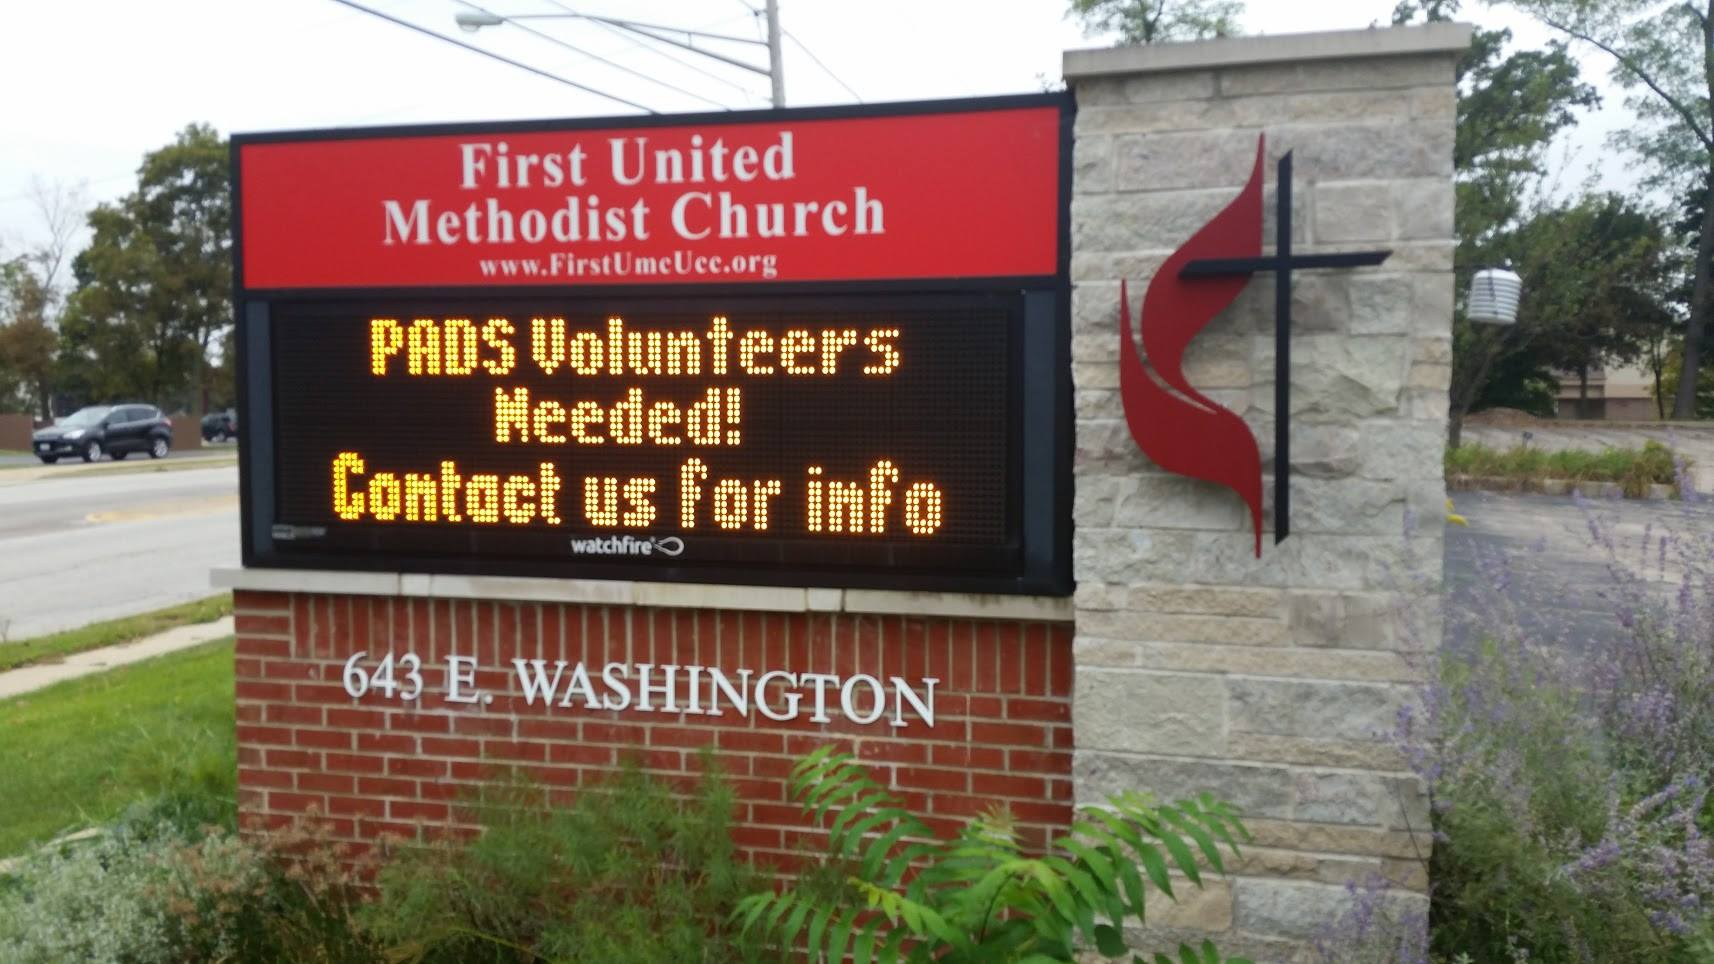 Are you or someone you know able to volunteer? Please contact Brian Hendricks at hendricks@fnal.gov or 630-333-0640.